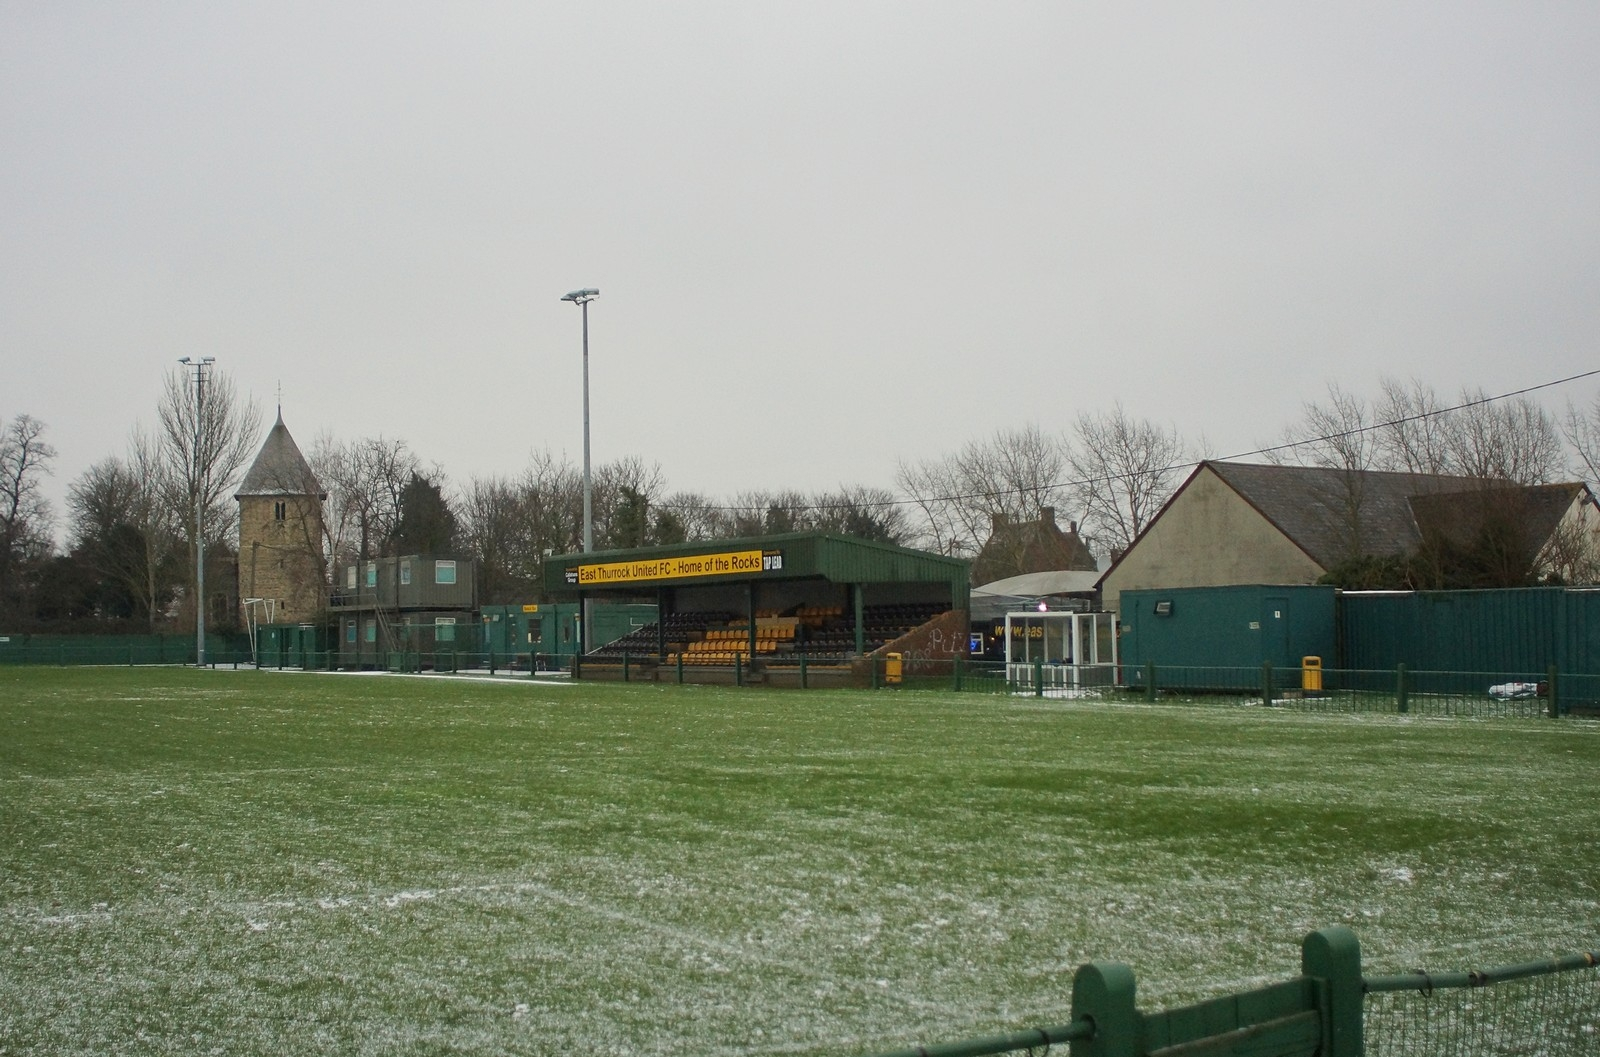 East Thurrock United's current ground, Rookery Hill. The club are looking to sell this land for housing and move elsewhere. [Pic - Mikey Cartwright/Ponderosa Pix]